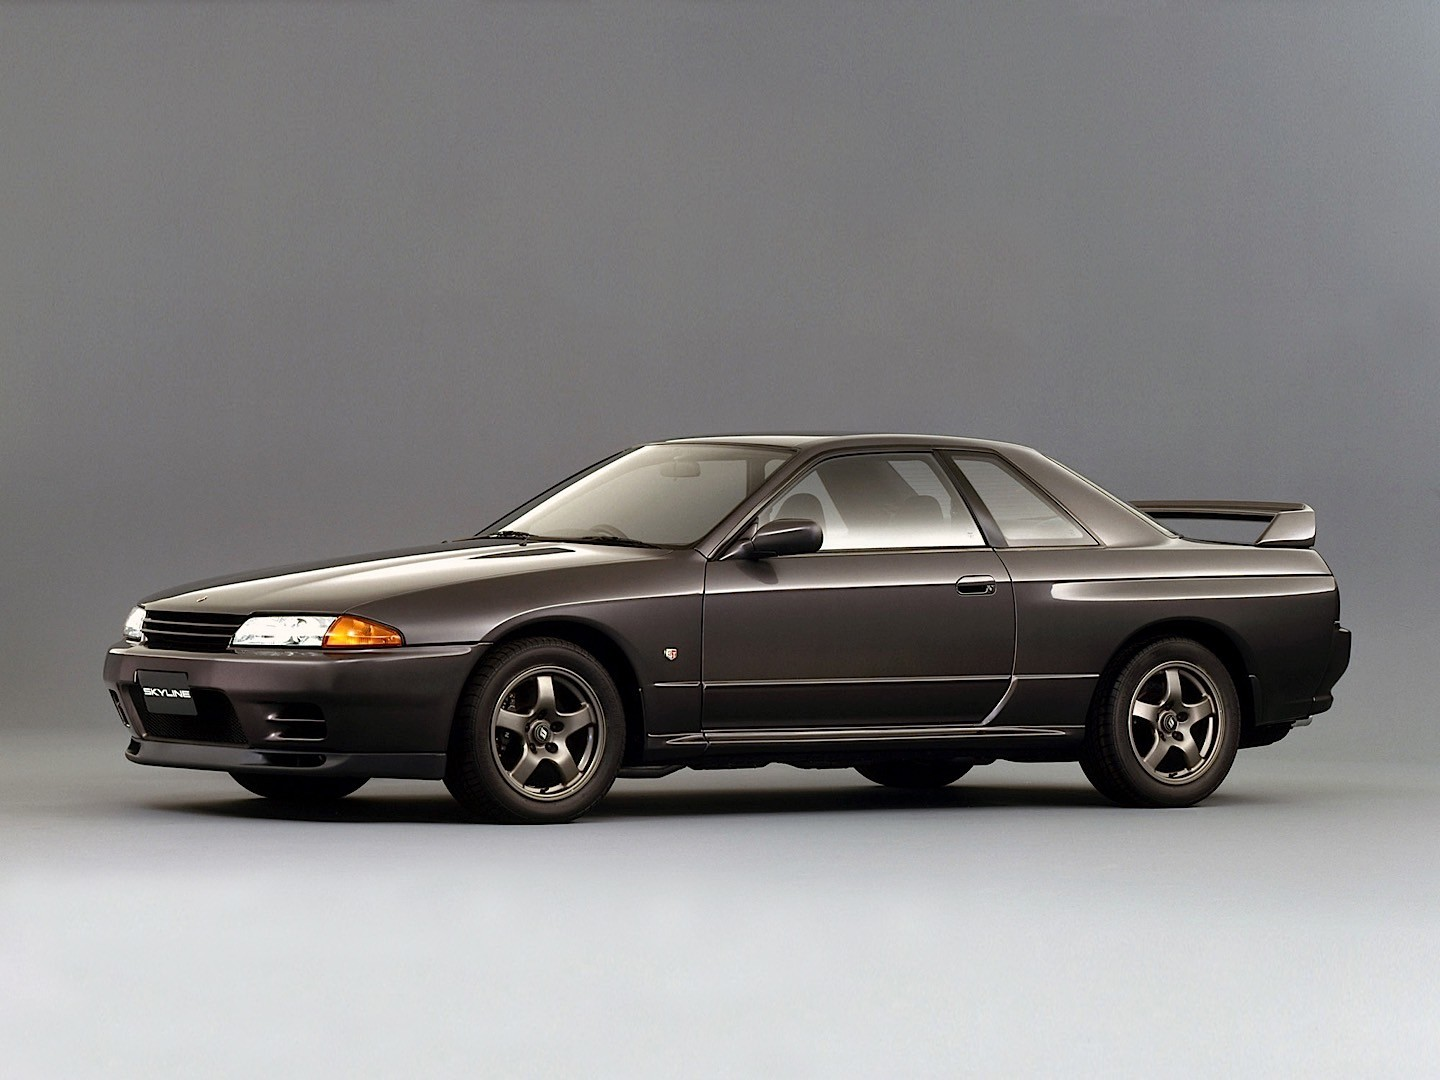 nissan skyline gt r r32 specs 1989 1990 1991 1992 1993 1994 autoevolution. Black Bedroom Furniture Sets. Home Design Ideas